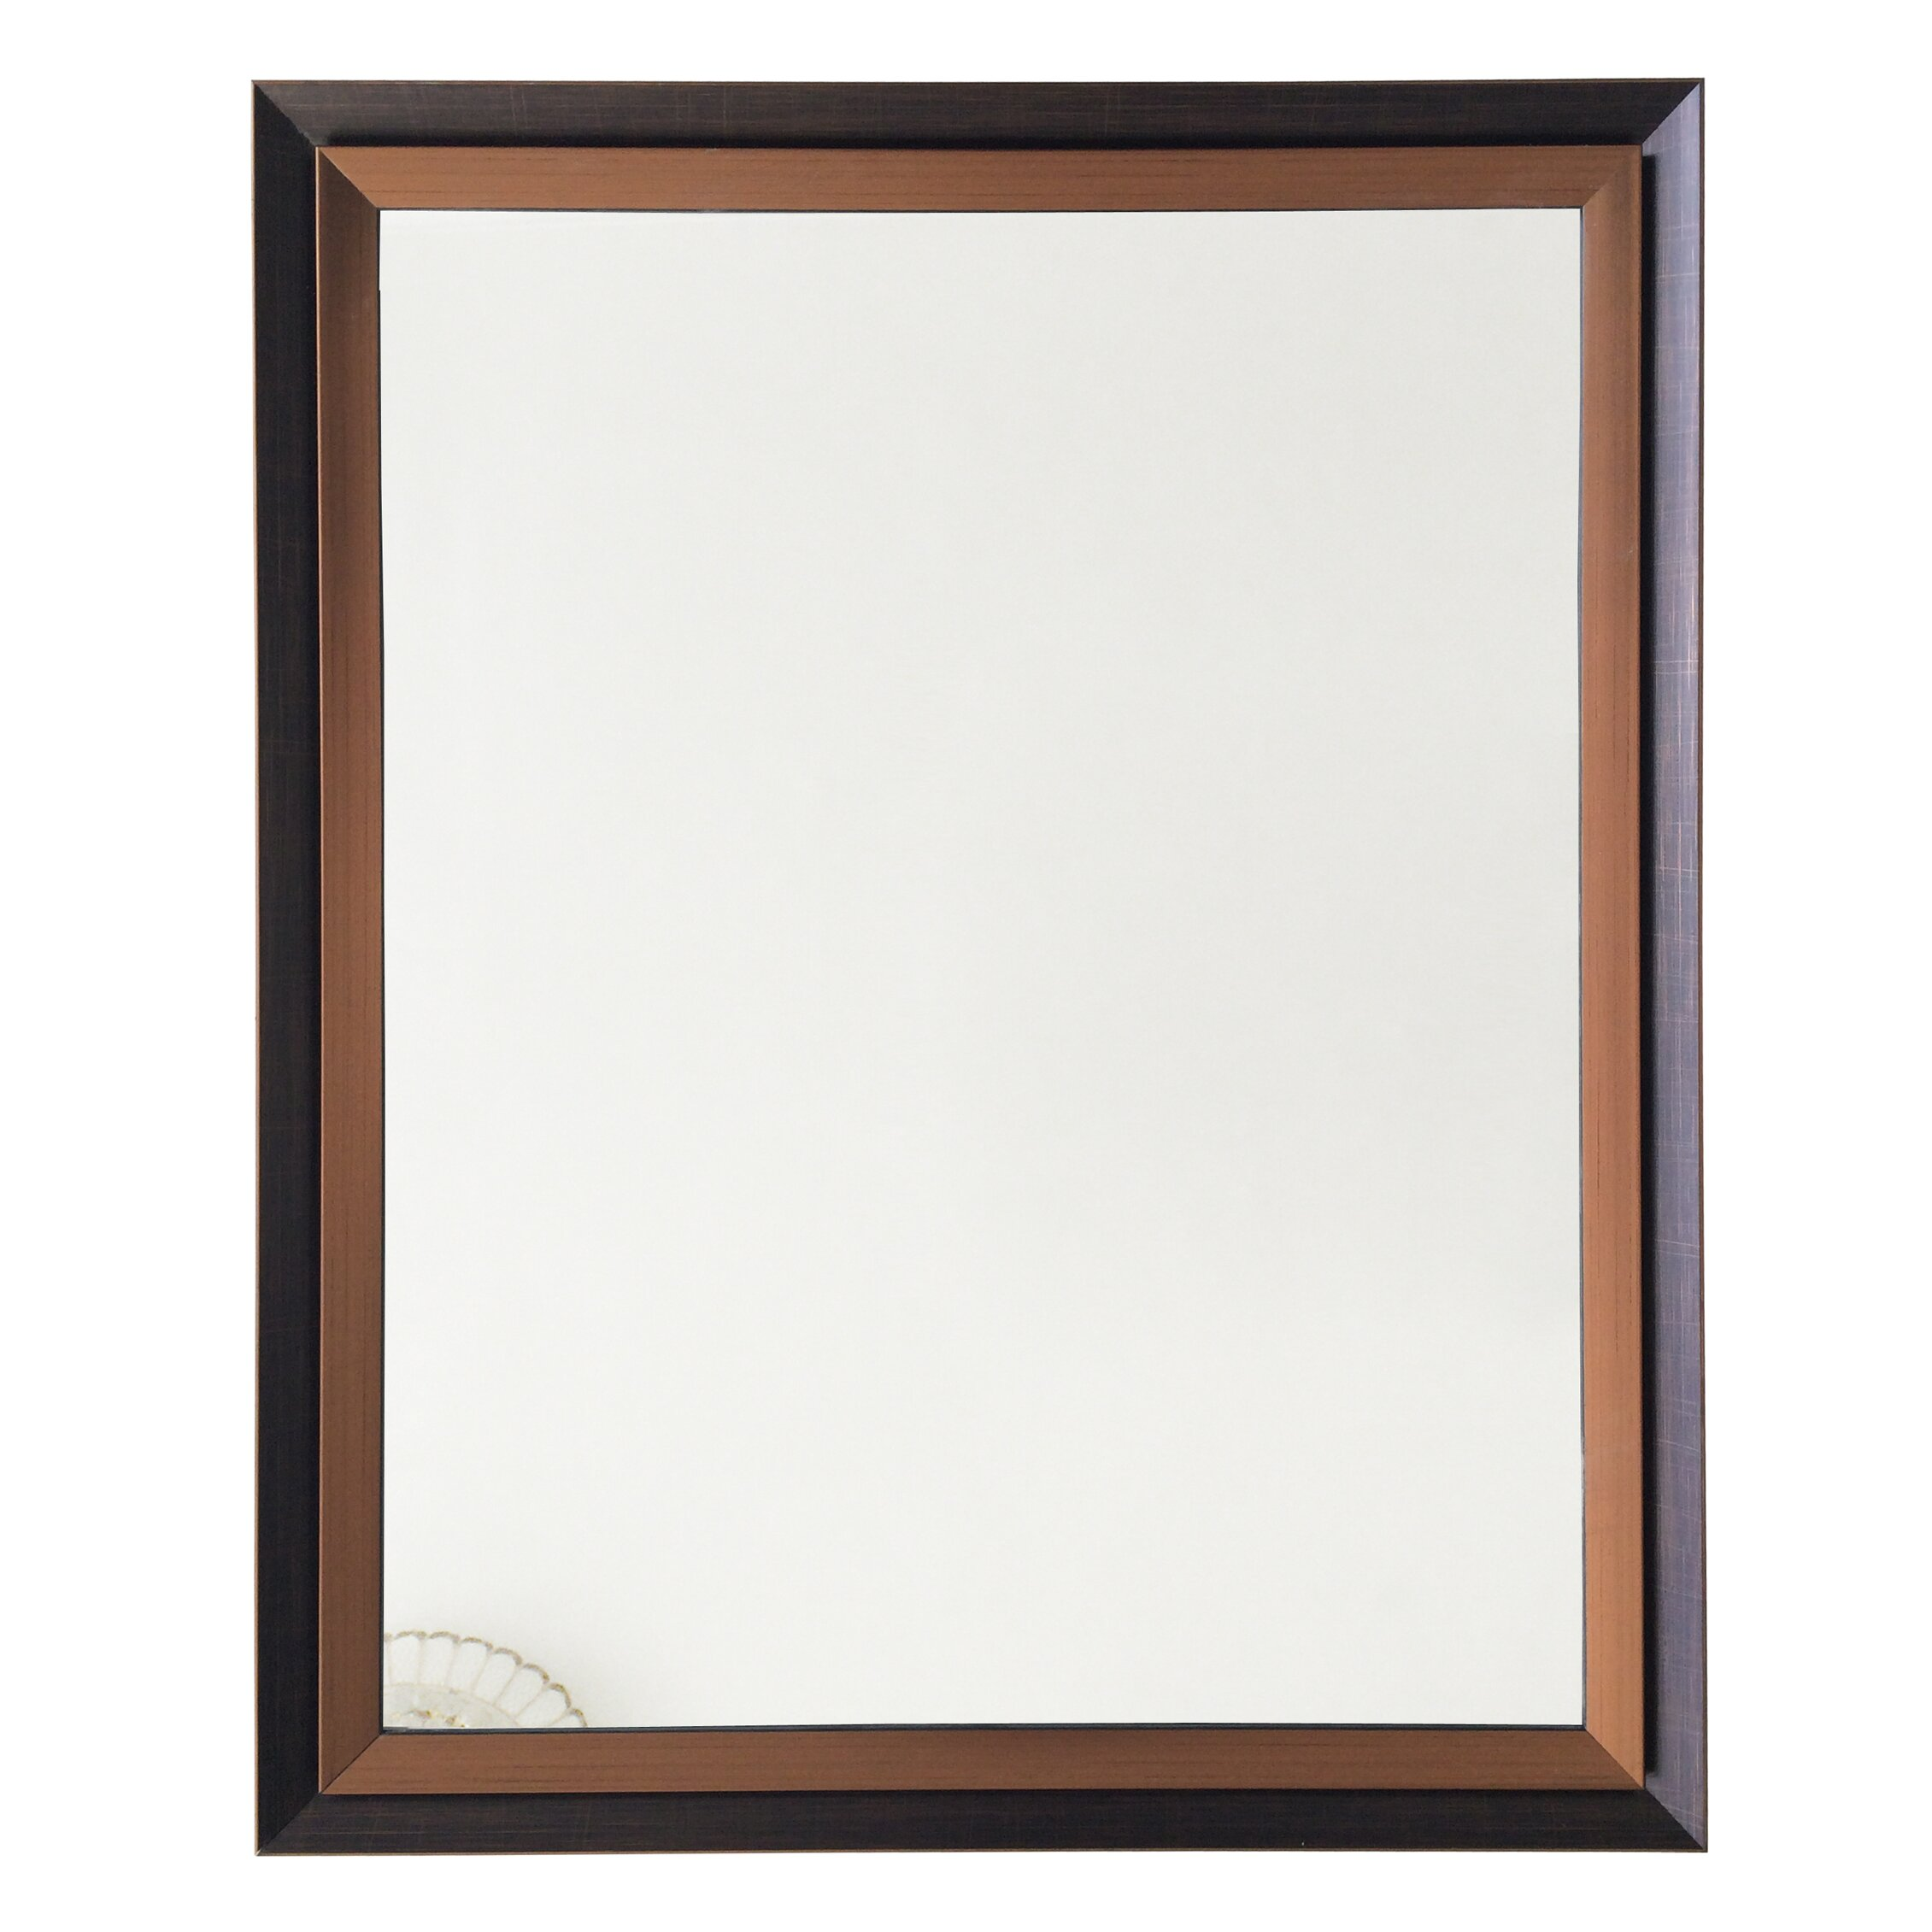 Kingwinhomedecor framed wall mirror reviews wayfair for Decor mirror